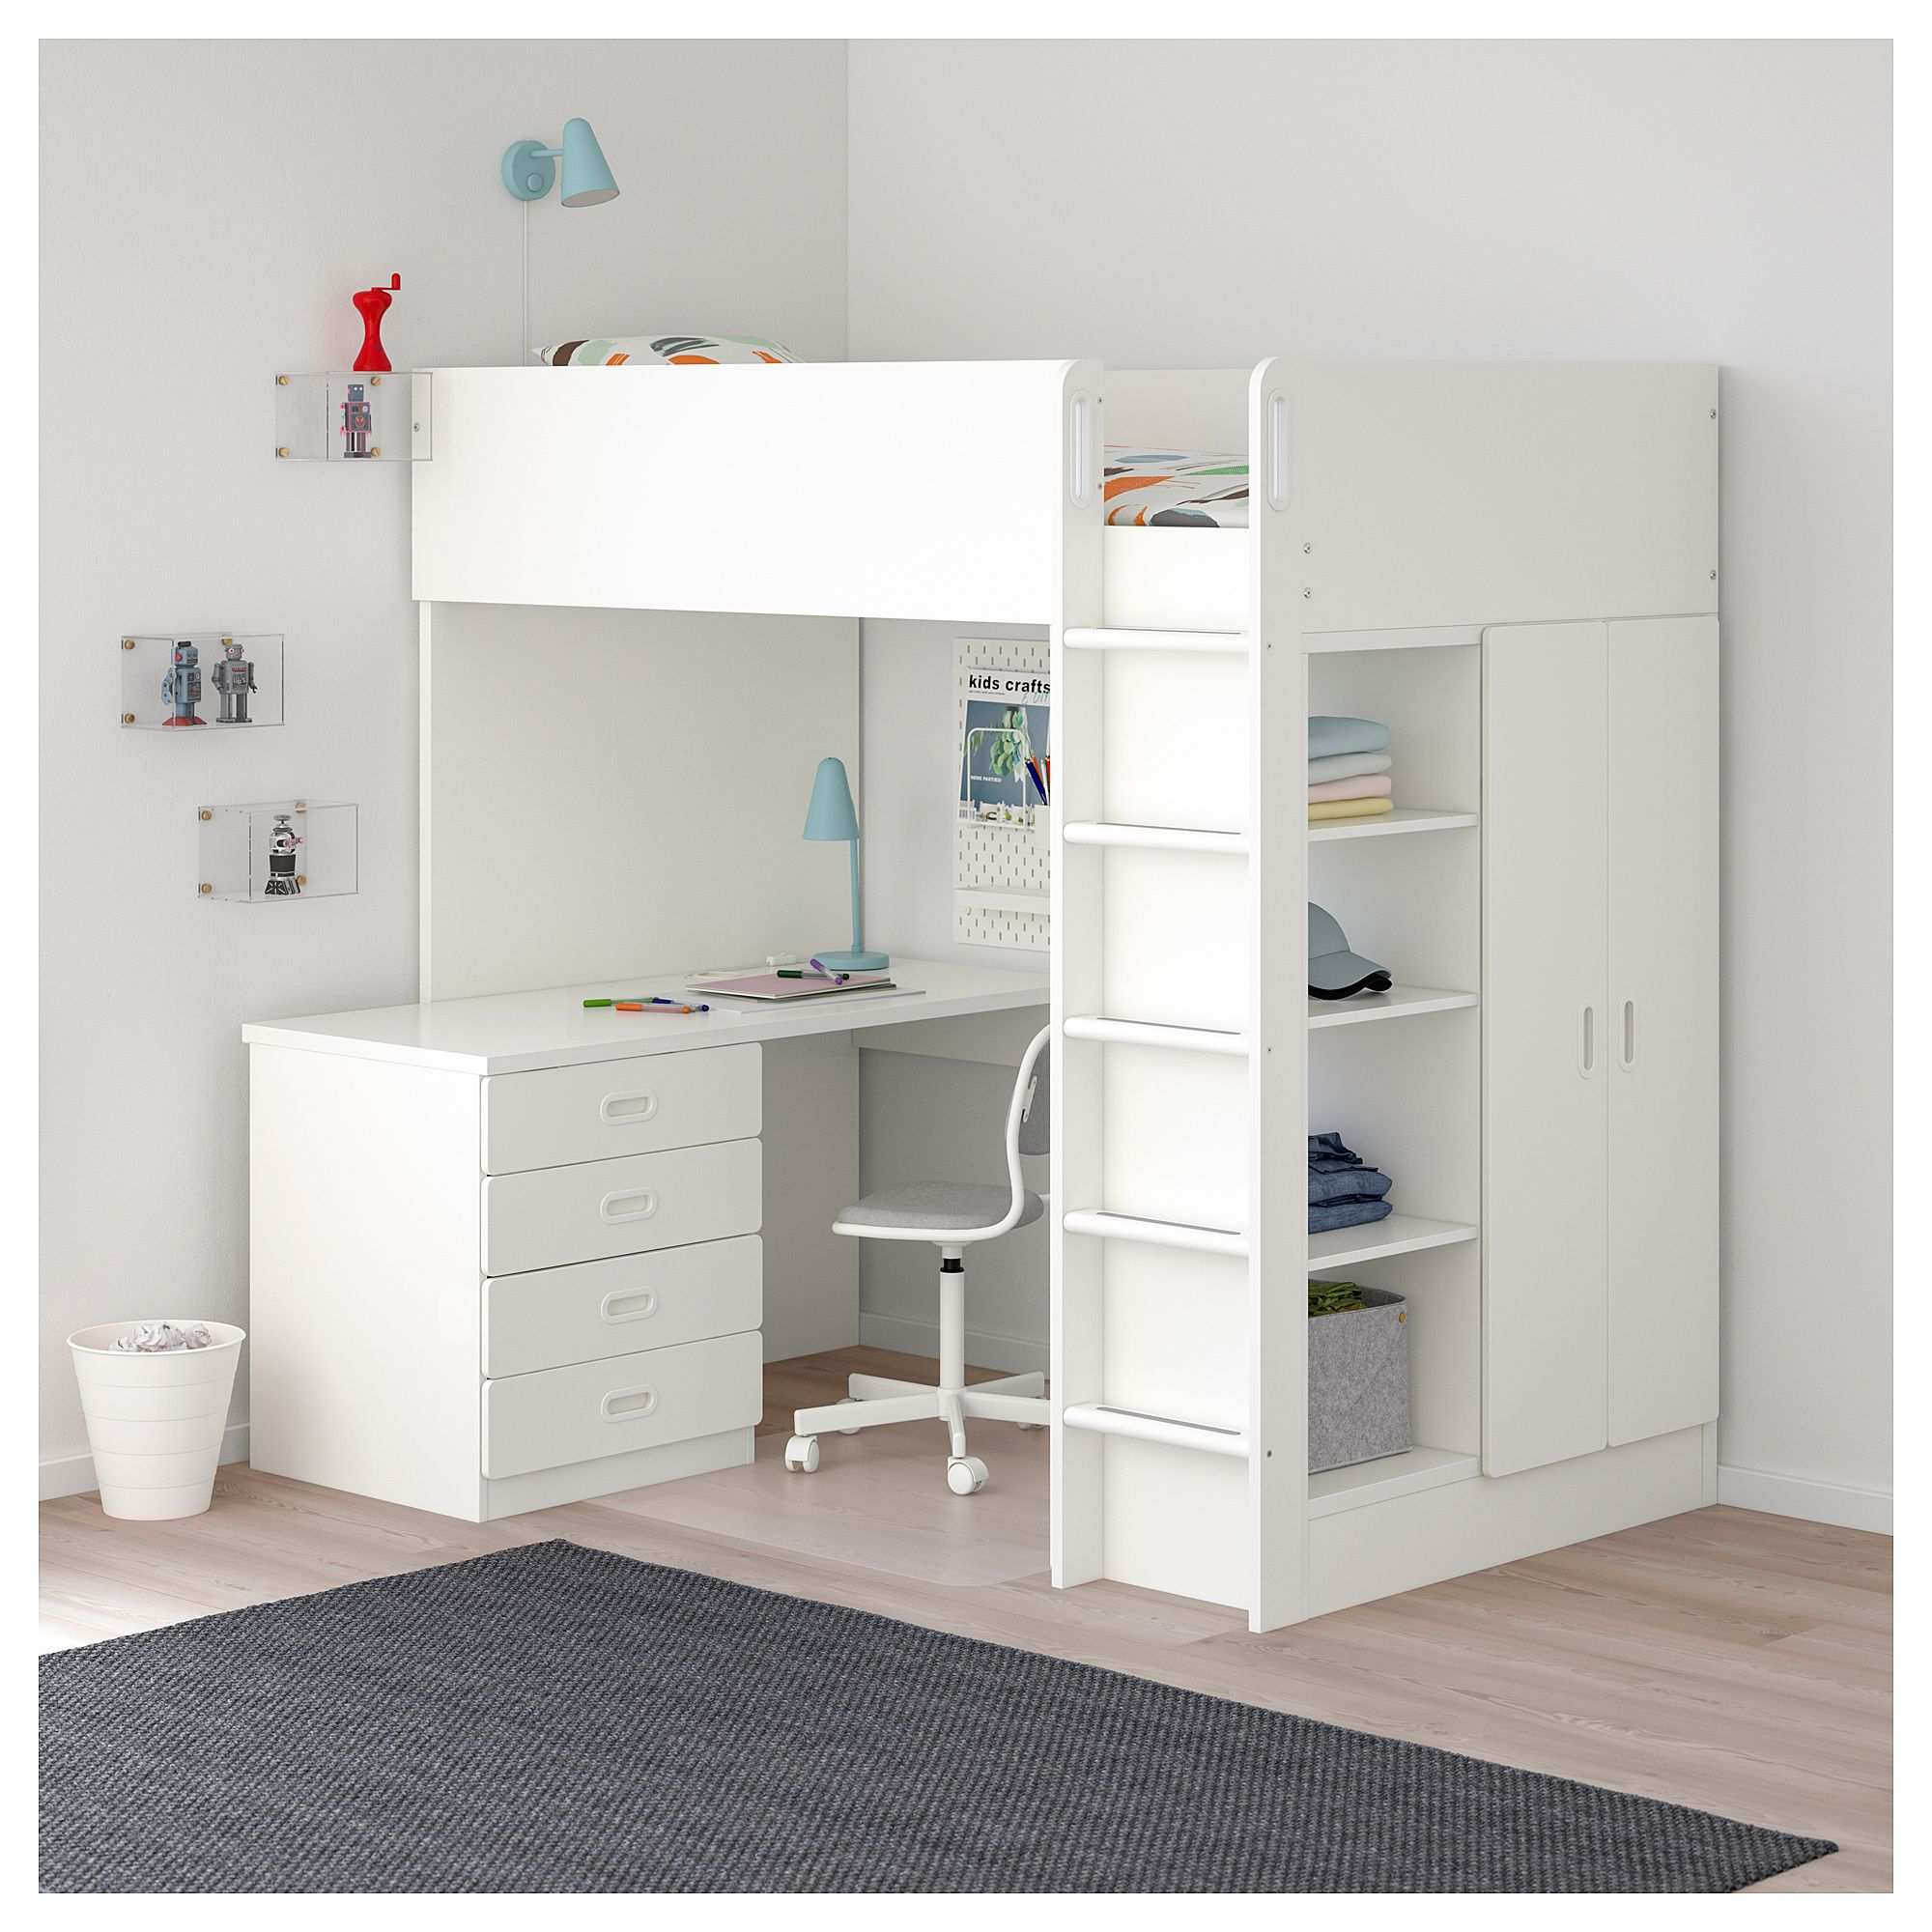 Loft bed with desk blue  IKEA  STUVA  FRITIDS Loft bed with  drawers doors white white